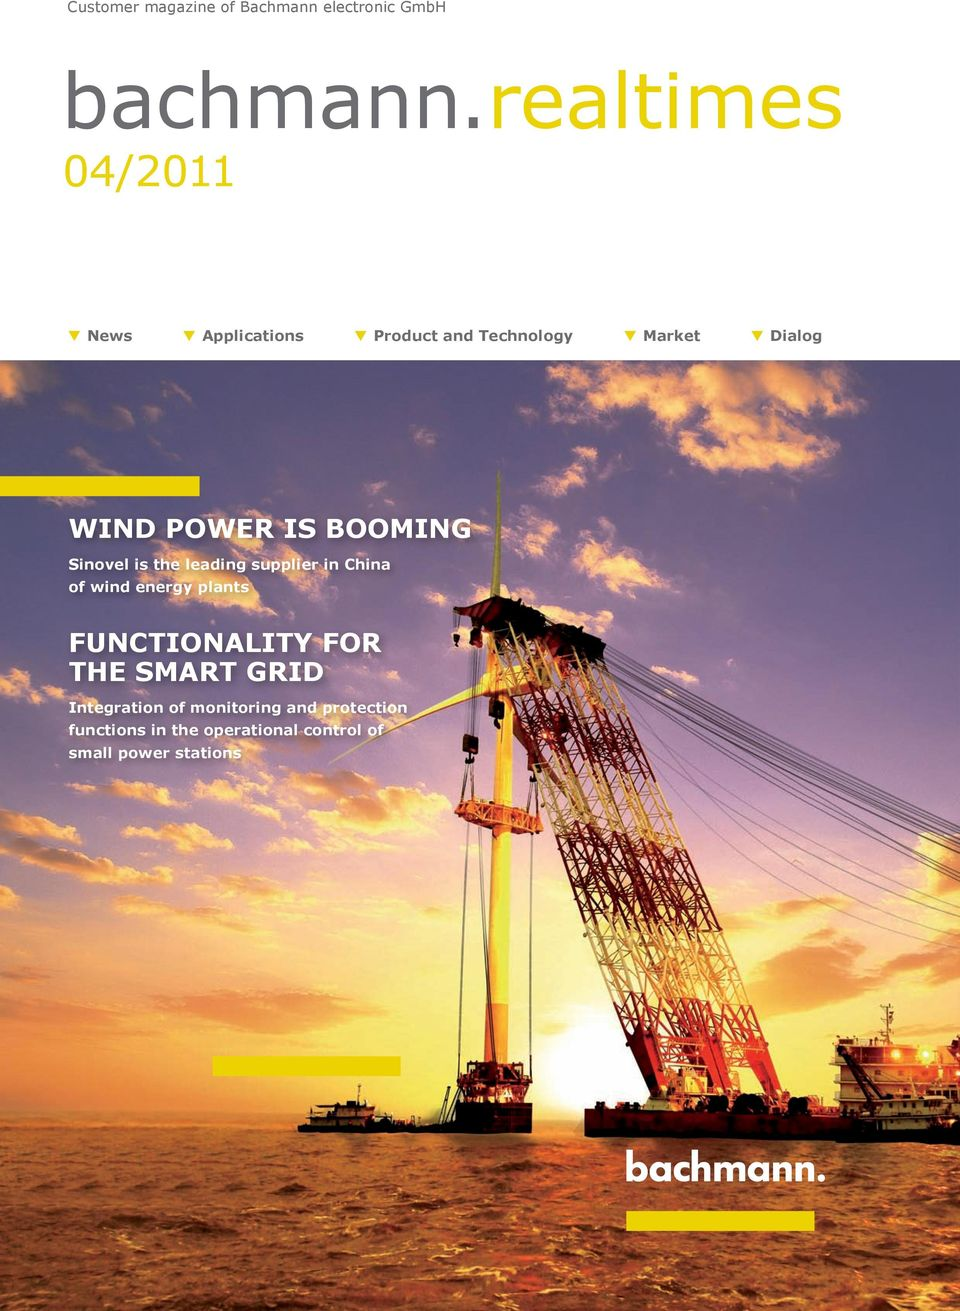 booming Sinovel is the leading supplier in china of wind energy plants functionality